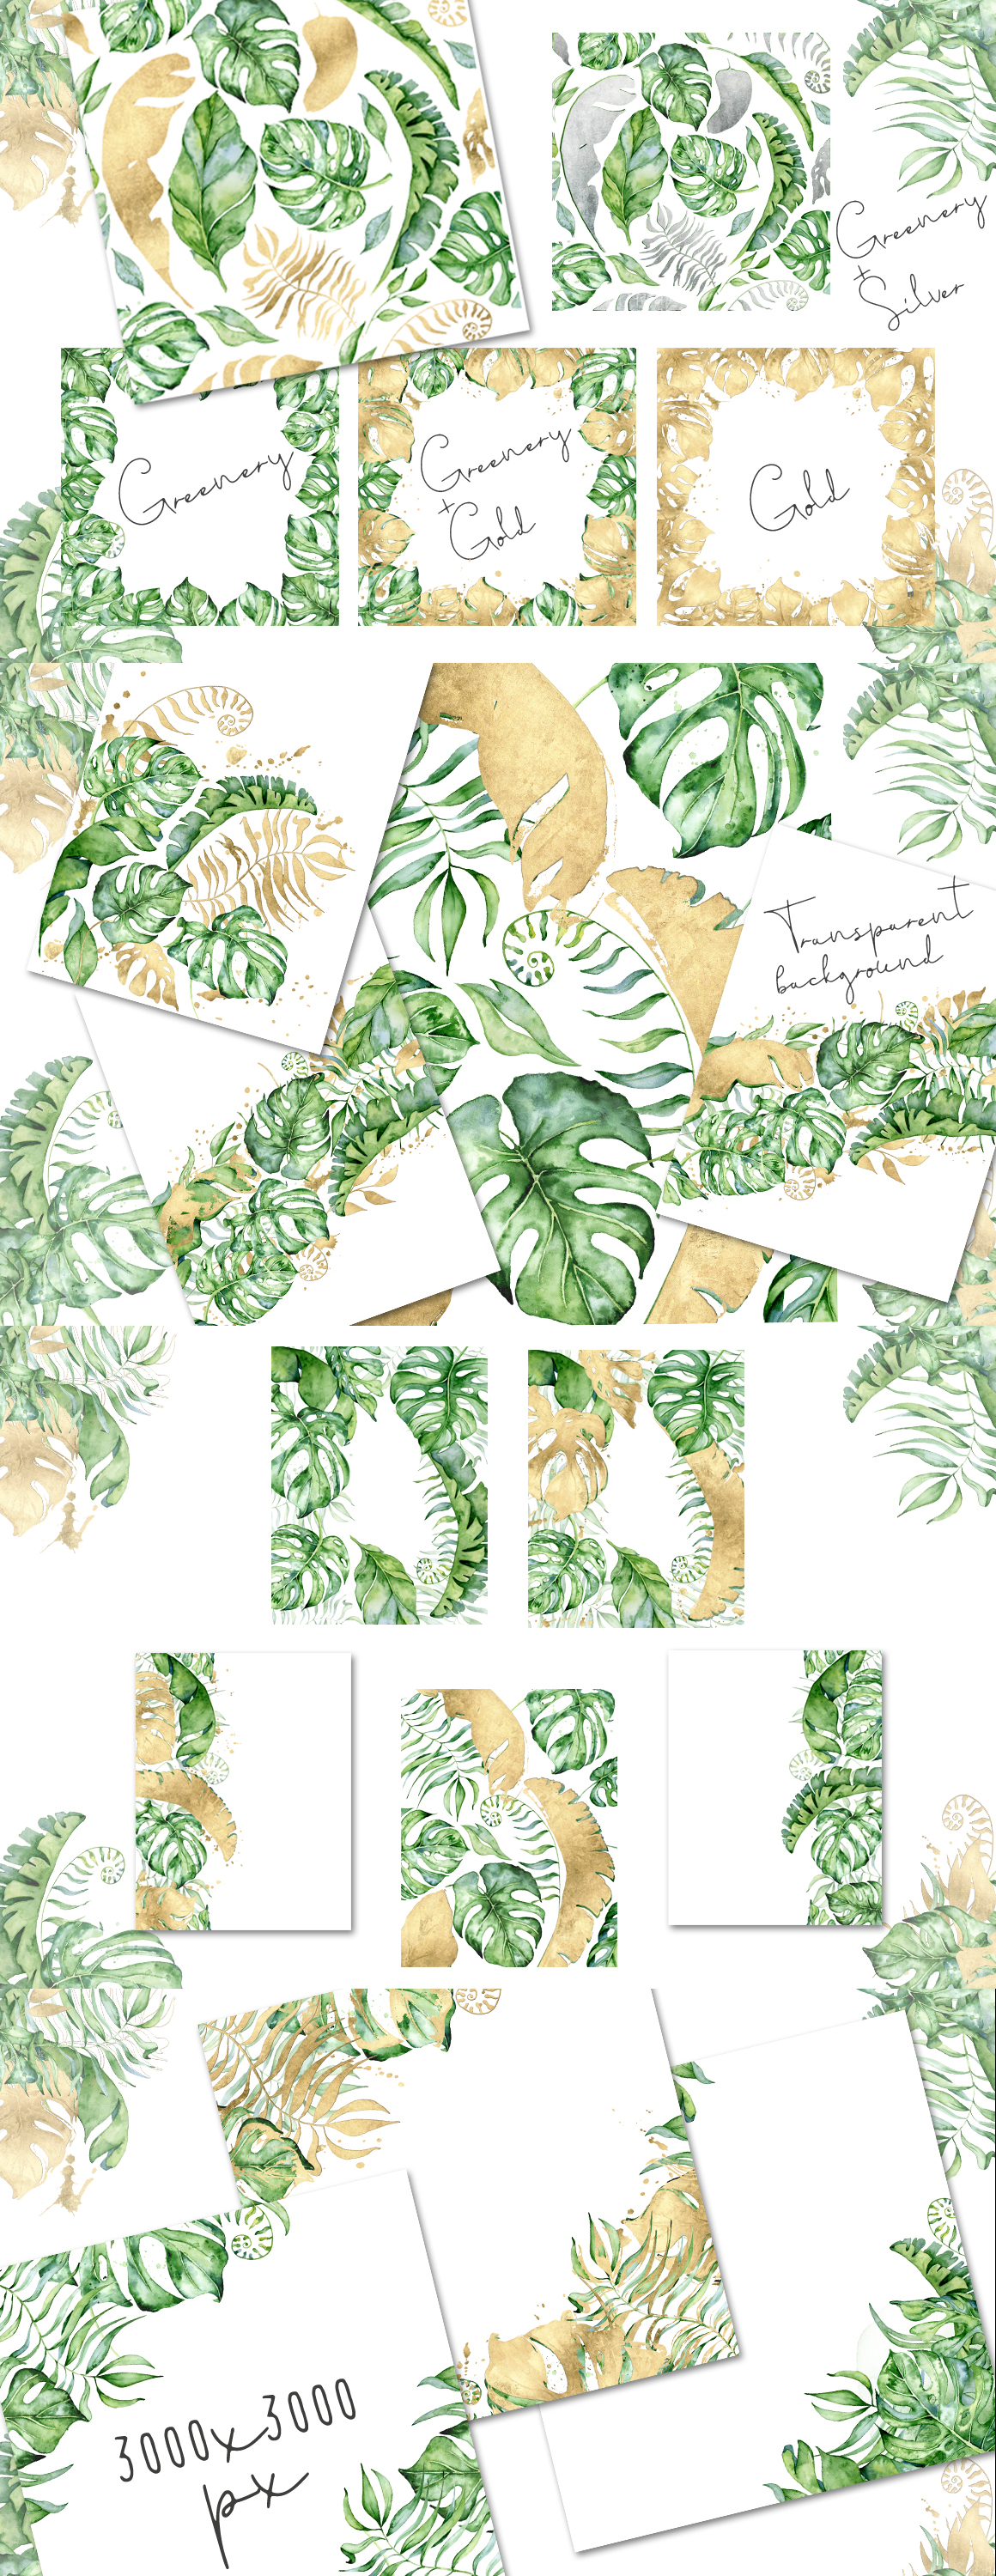 Mistery Monstera - tropical leaves watercolor illustration example image 27